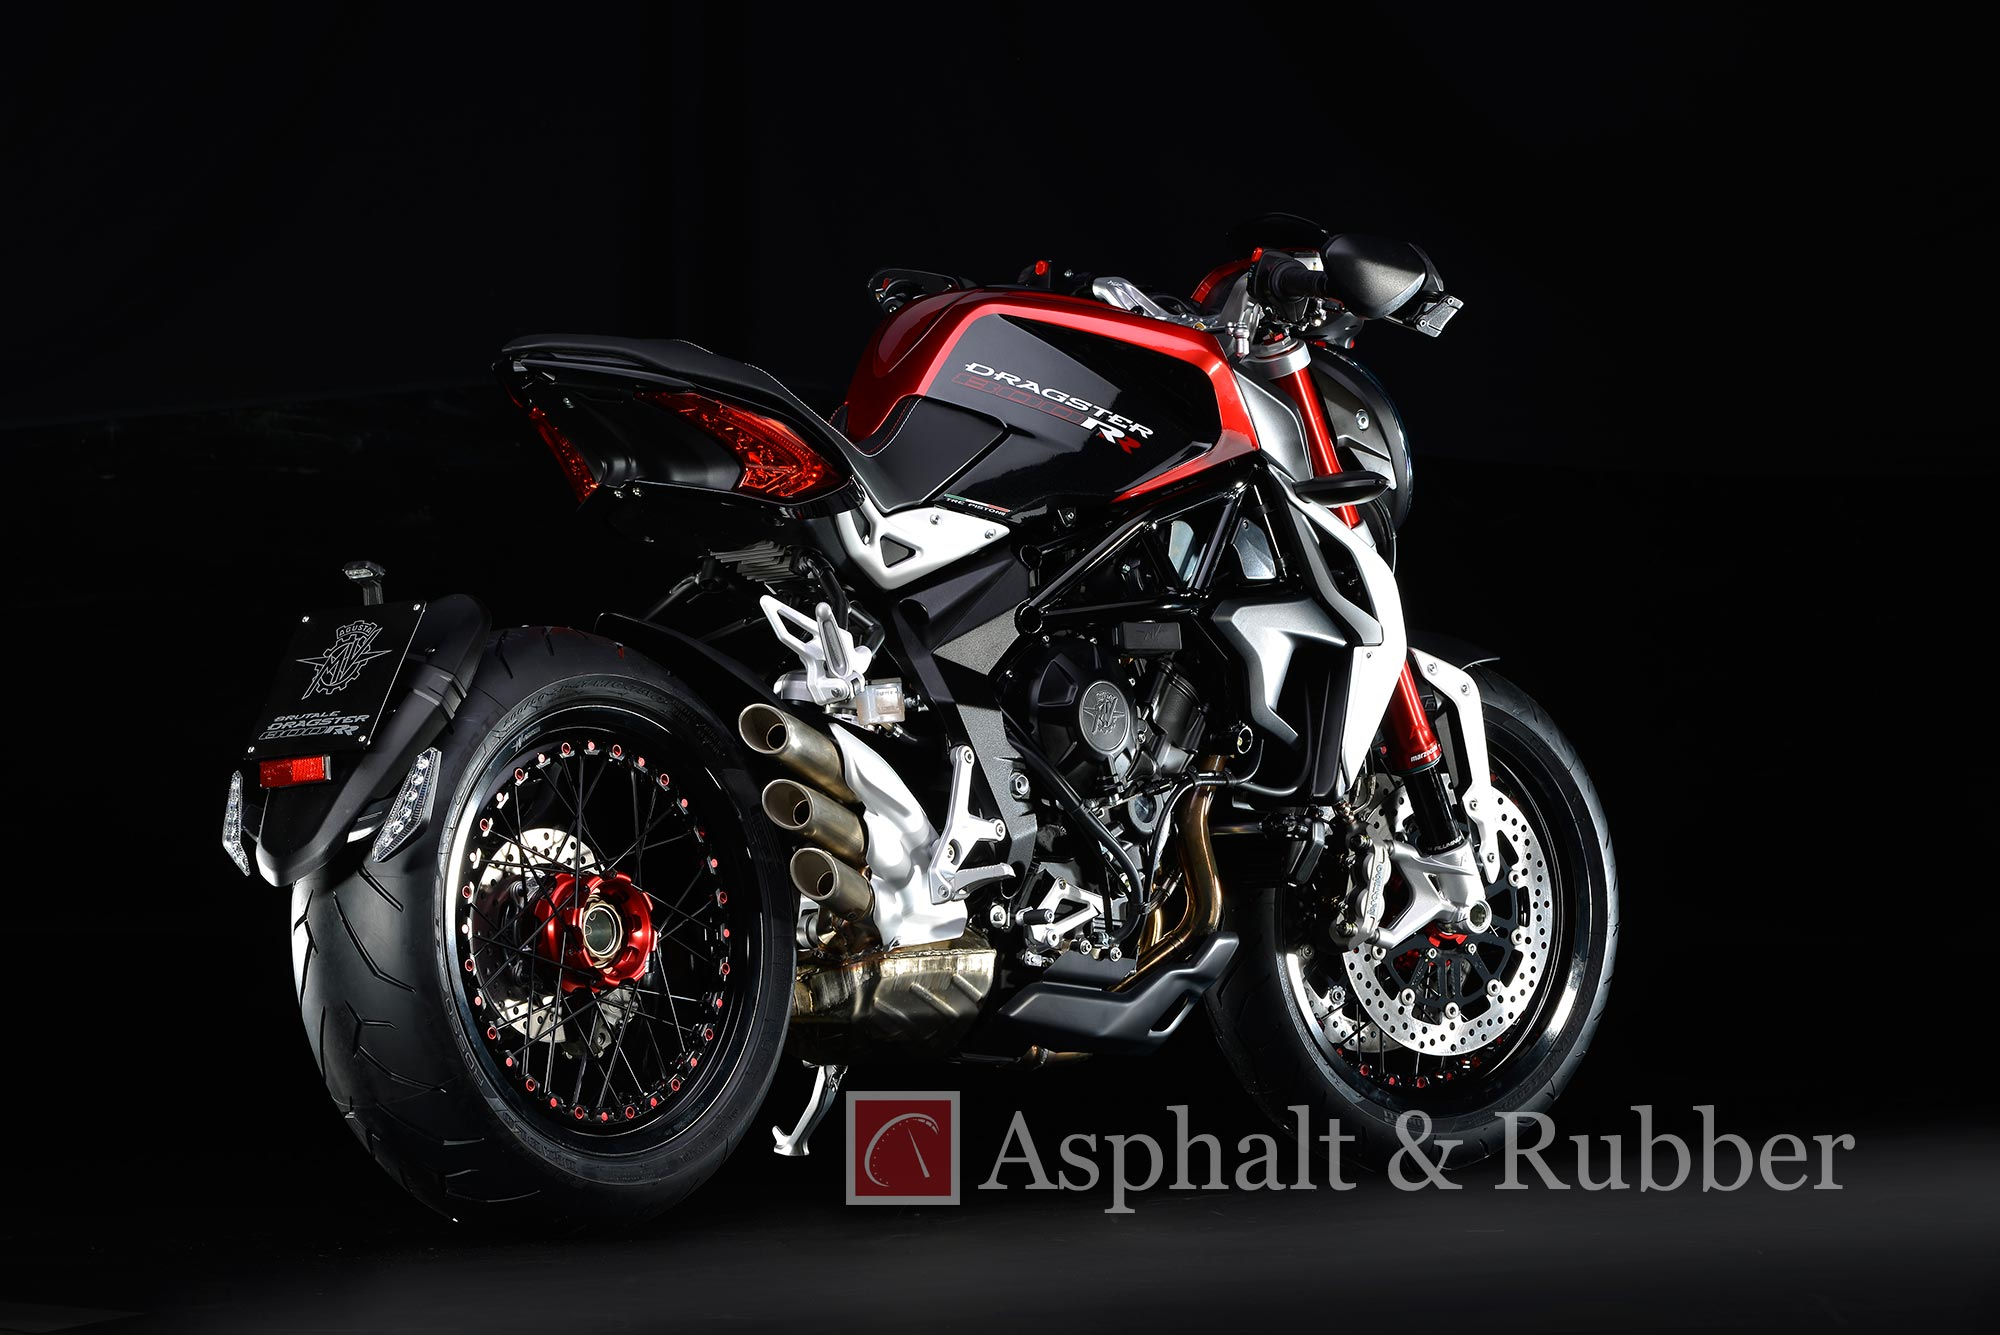 leaked: first photos of the mv agusta dragster rr - asphalt & rubber